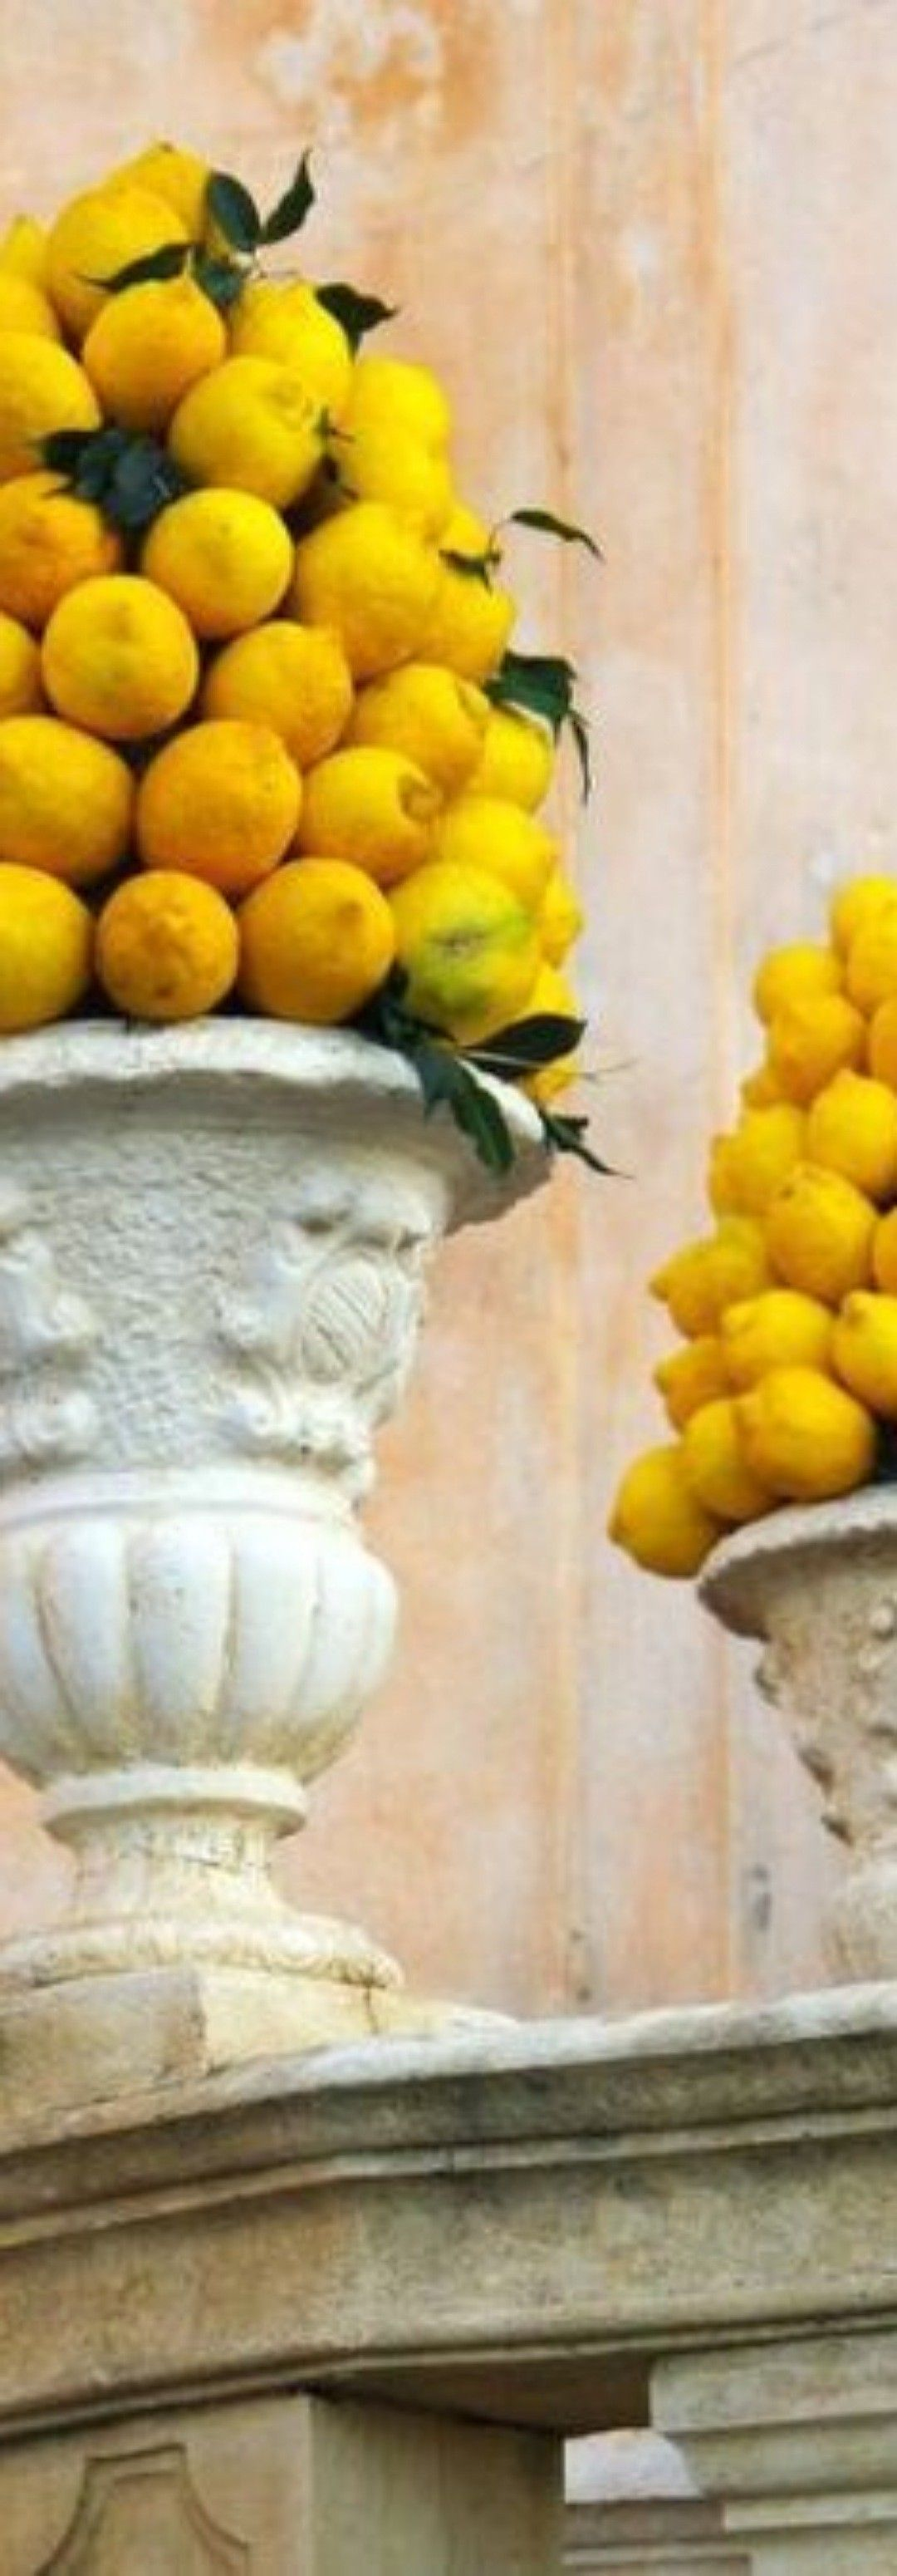 Pin by Caryatid on Citrus Rich girl, Fruit, Italy